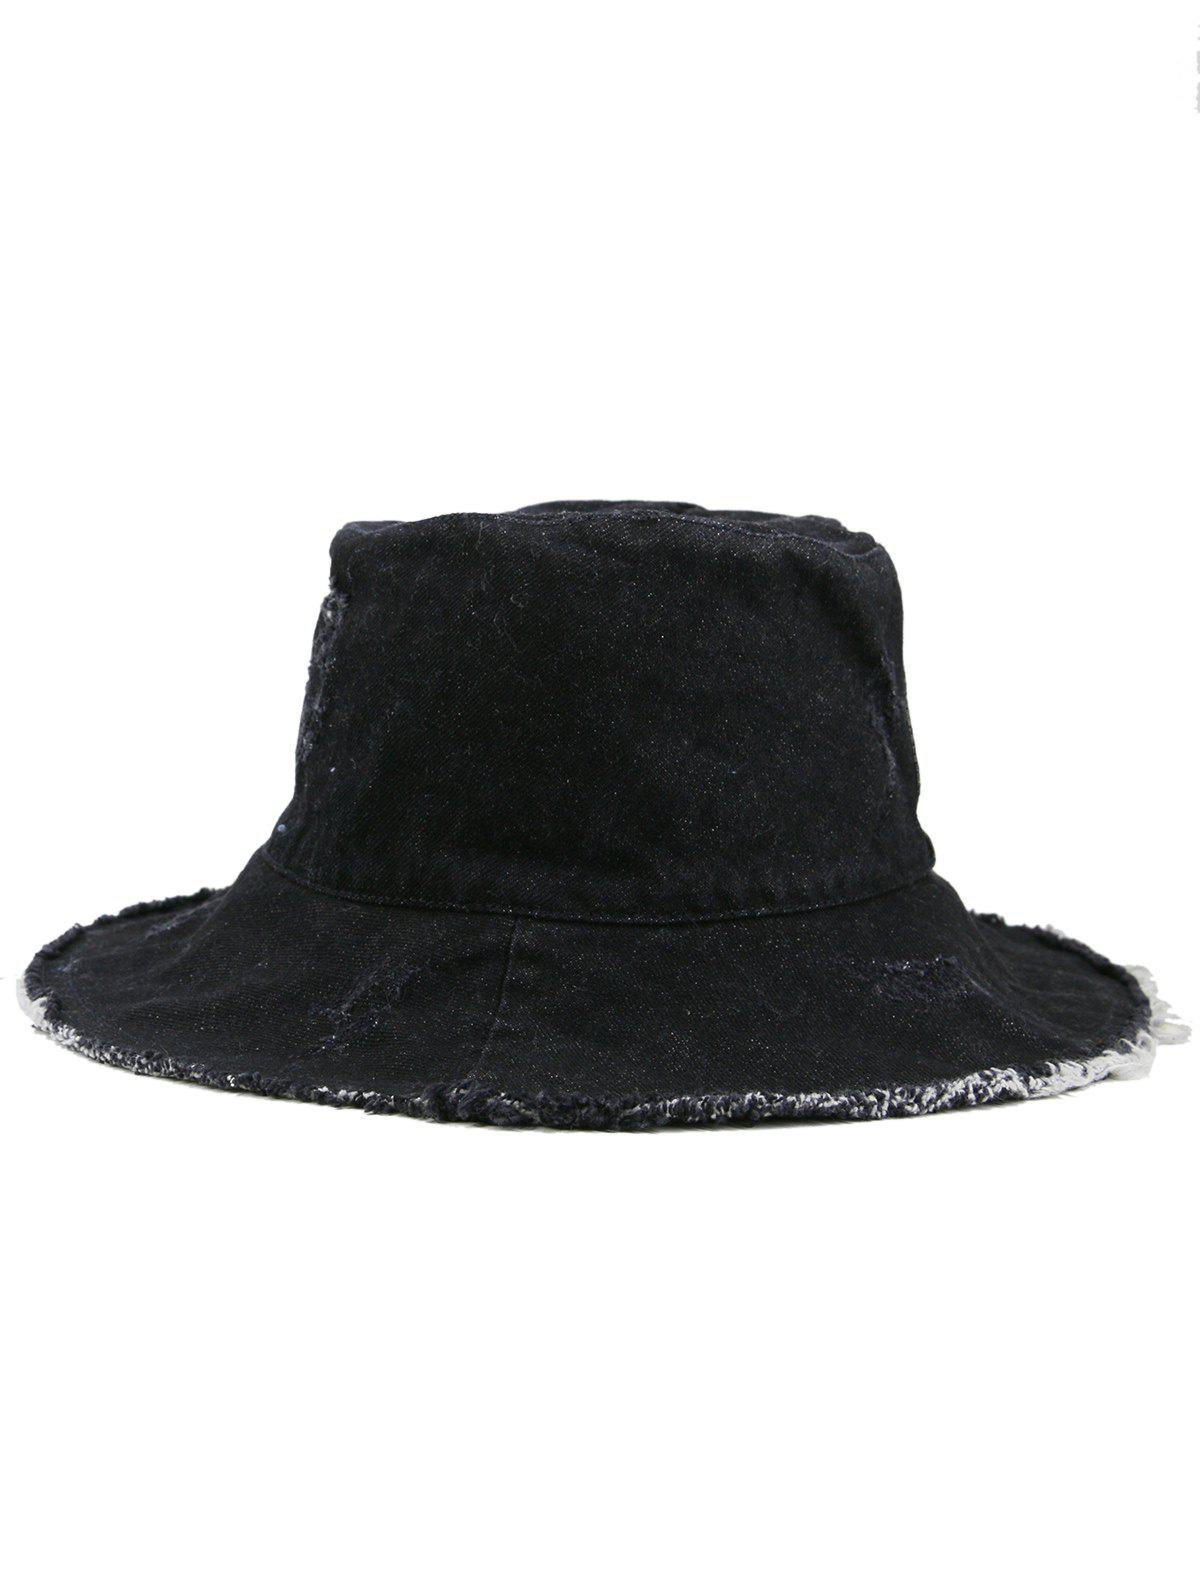 Washed Dyed Fringed Denim Fisherman Hat - BLACK